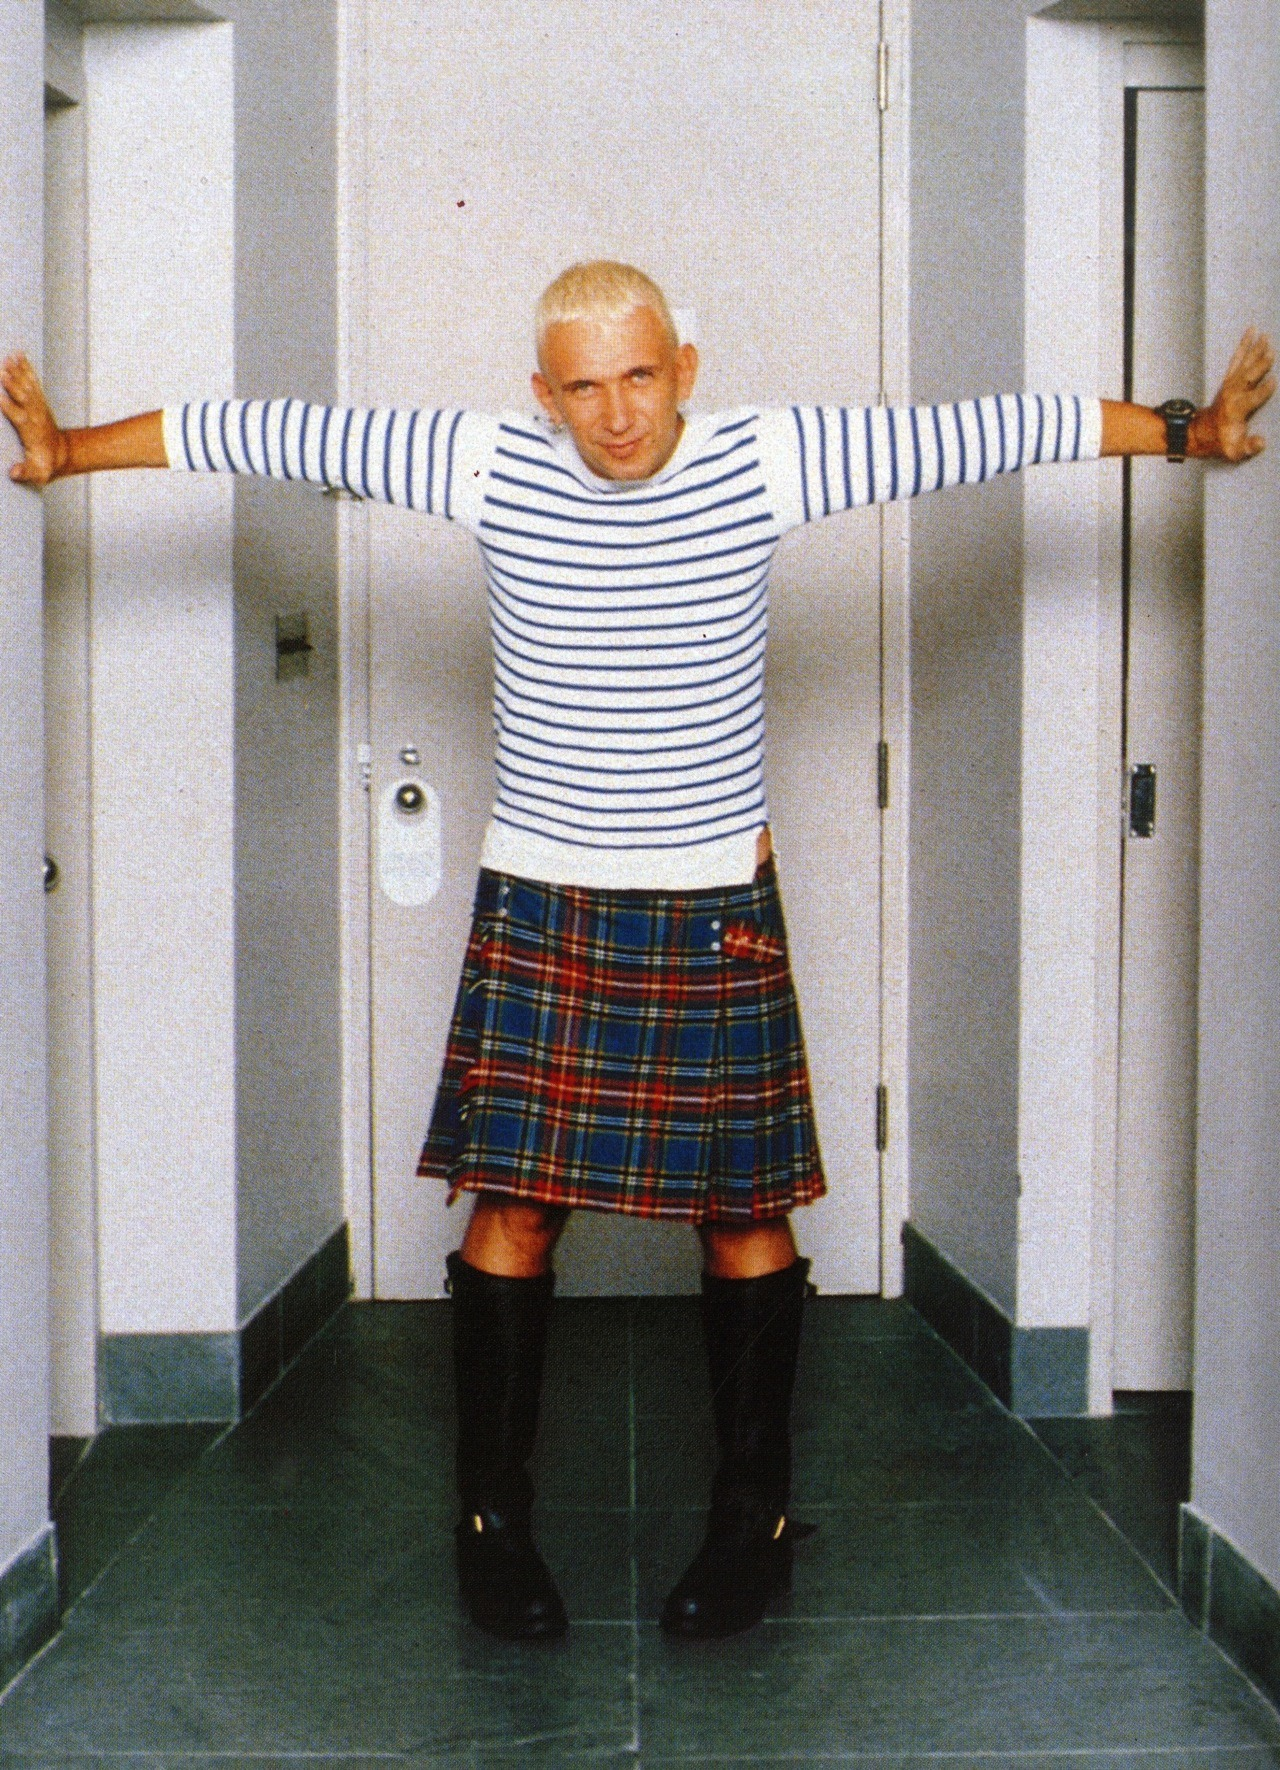 Jean Paul Gaultier in his classic kilt, sailor top, and boots. Elle 1994